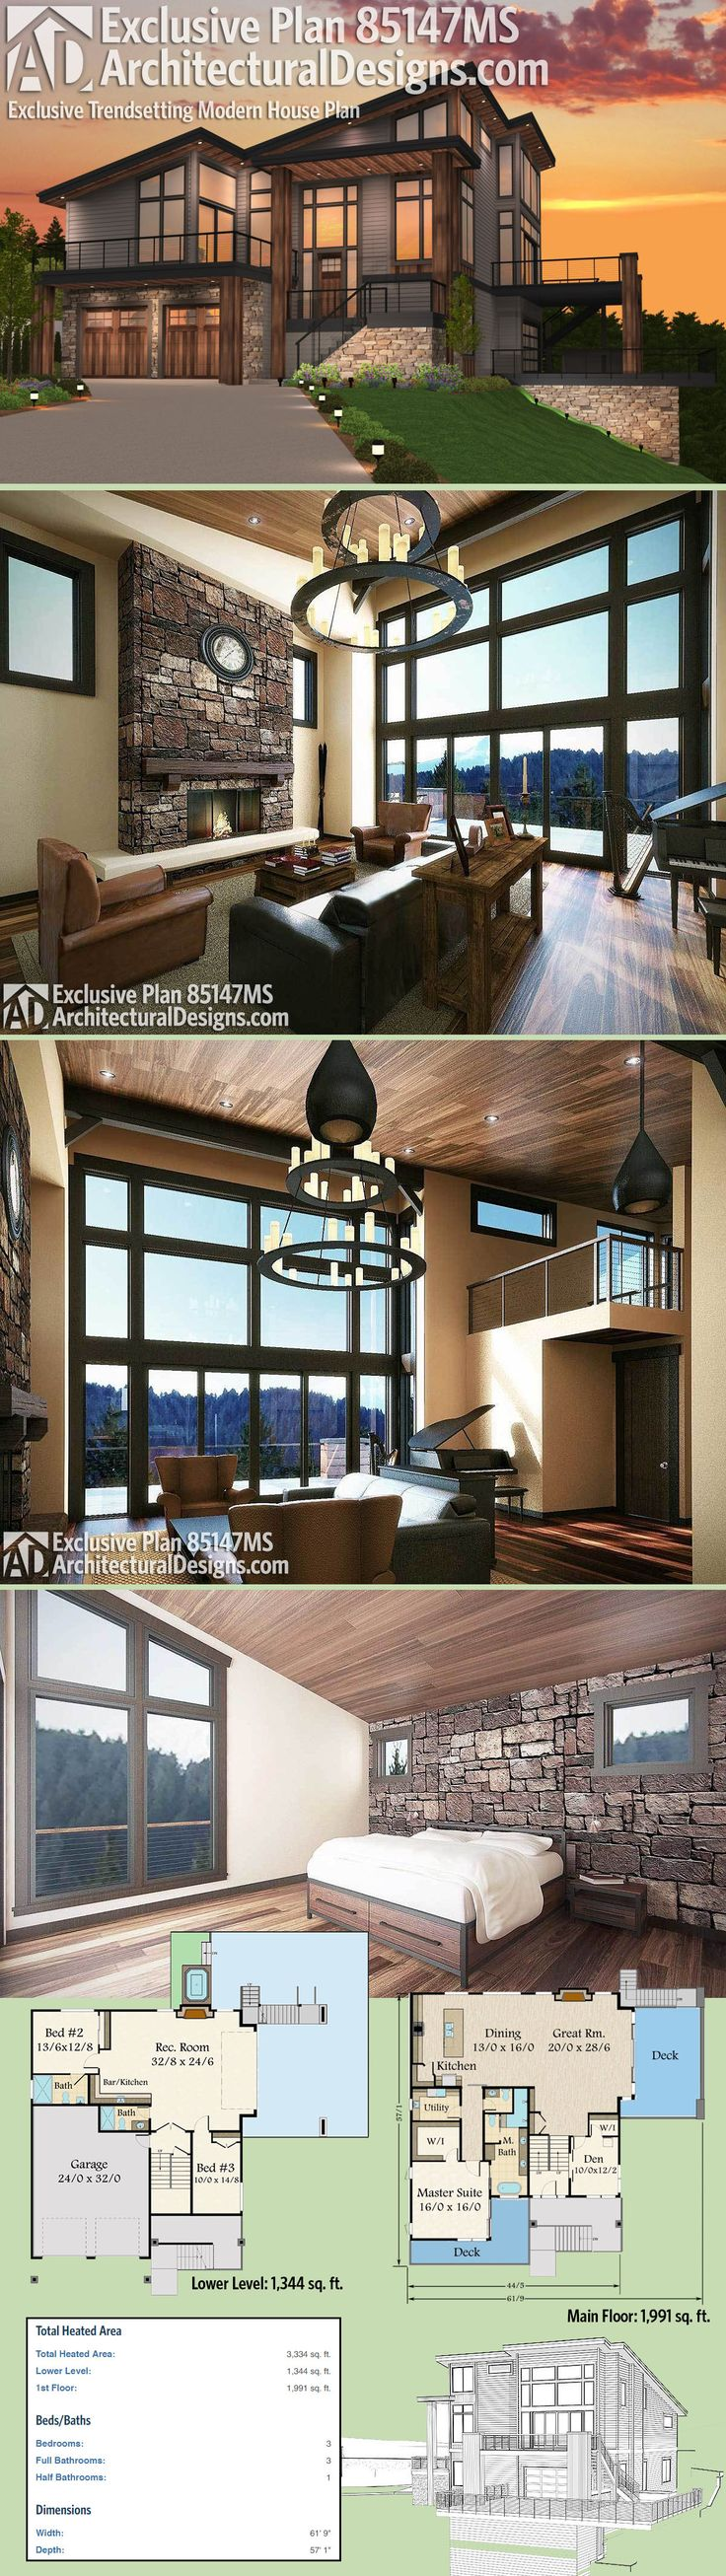 Architectural Designs Exclusive House Plan 85147MS beautifully